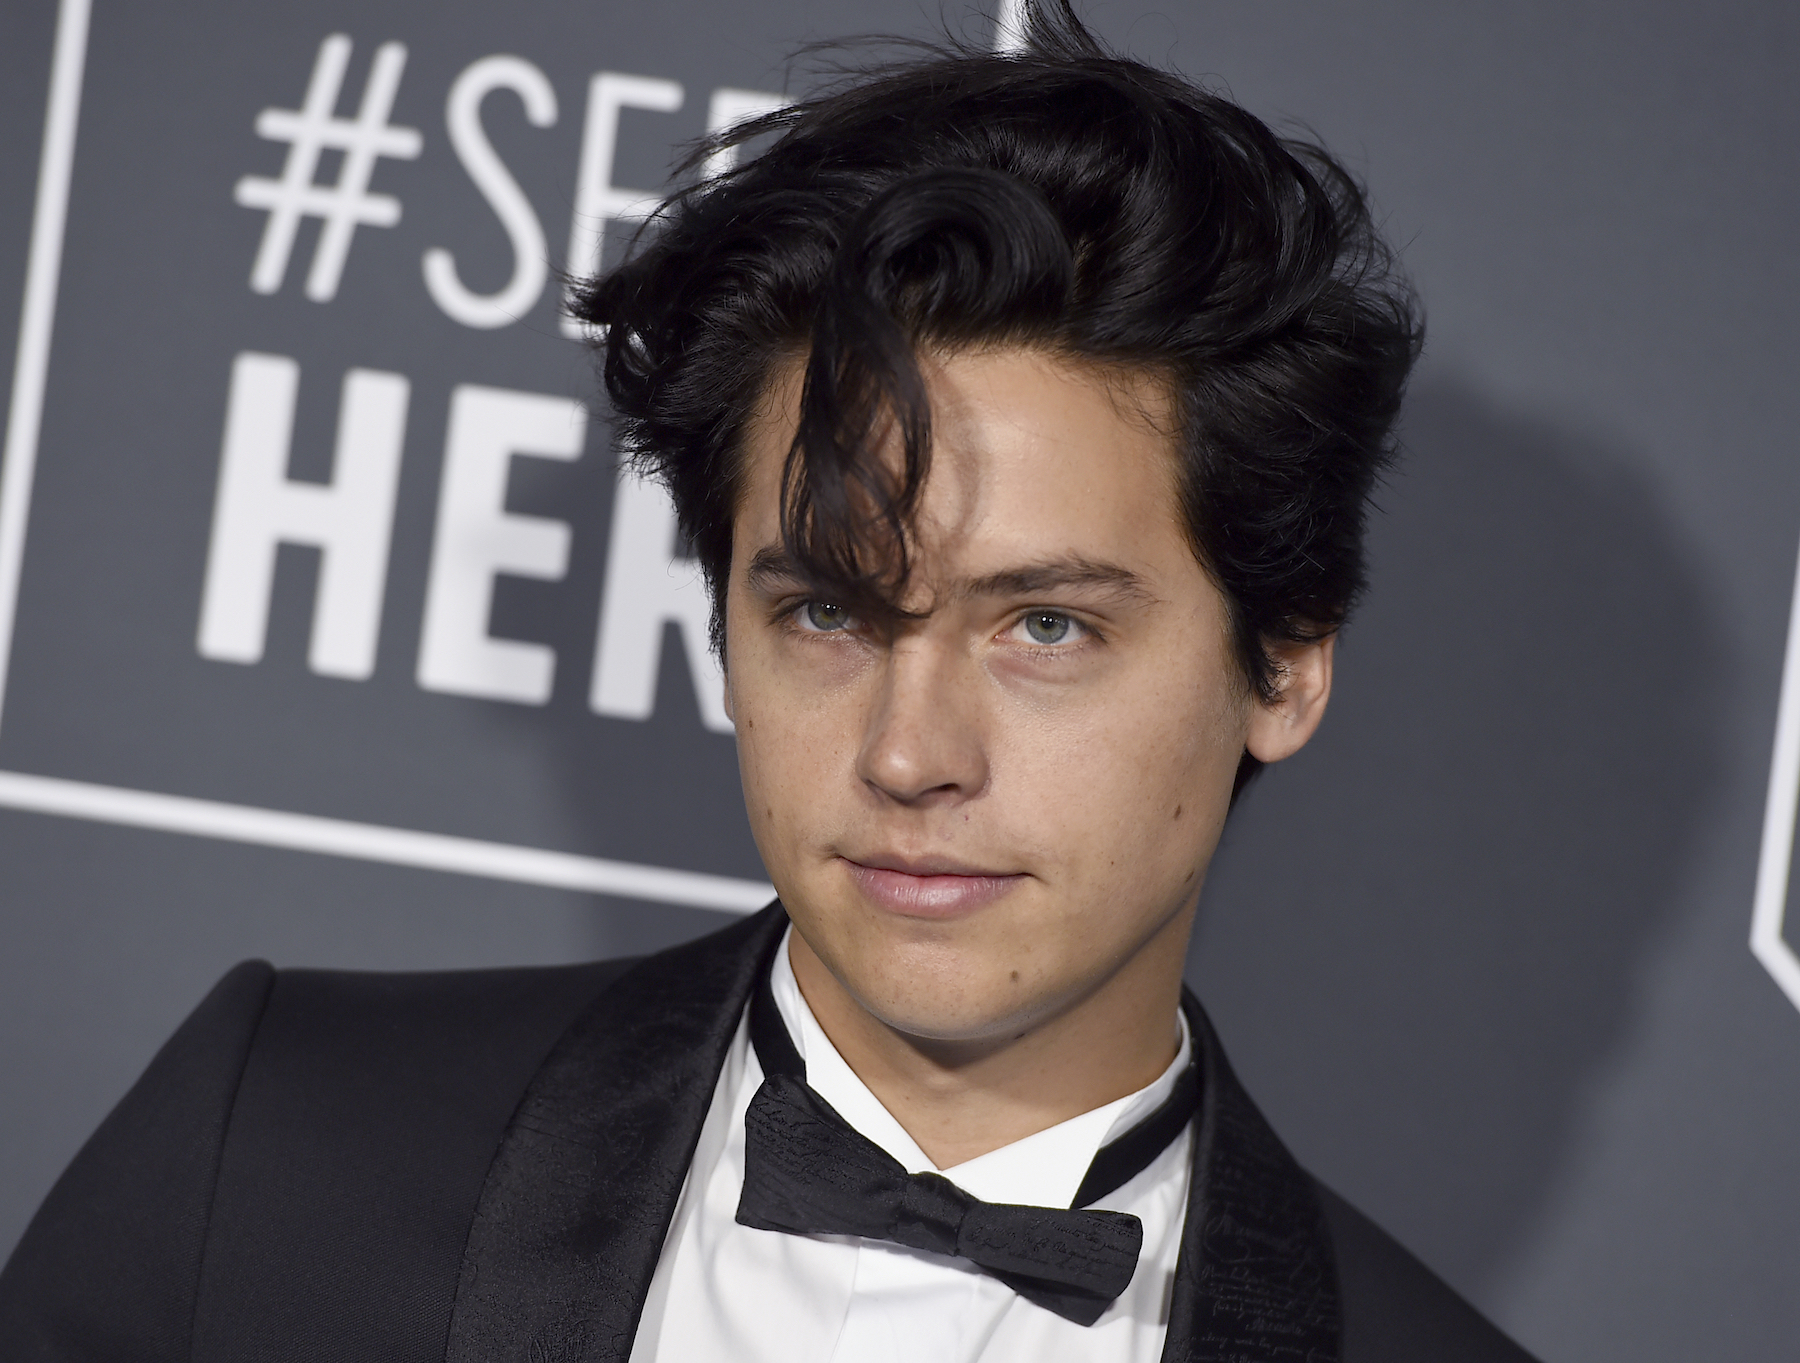 "<div class=""meta image-caption""><div class=""origin-logo origin-image ap""><span>AP</span></div><span class=""caption-text"">Cole Sprouse arrives at the 24th annual Critics' Choice Awards on Sunday, Jan. 13, 2019, at the Barker Hangar in Santa Monica, Calif. (Jordan Strauss/Invision/AP)</span></div>"